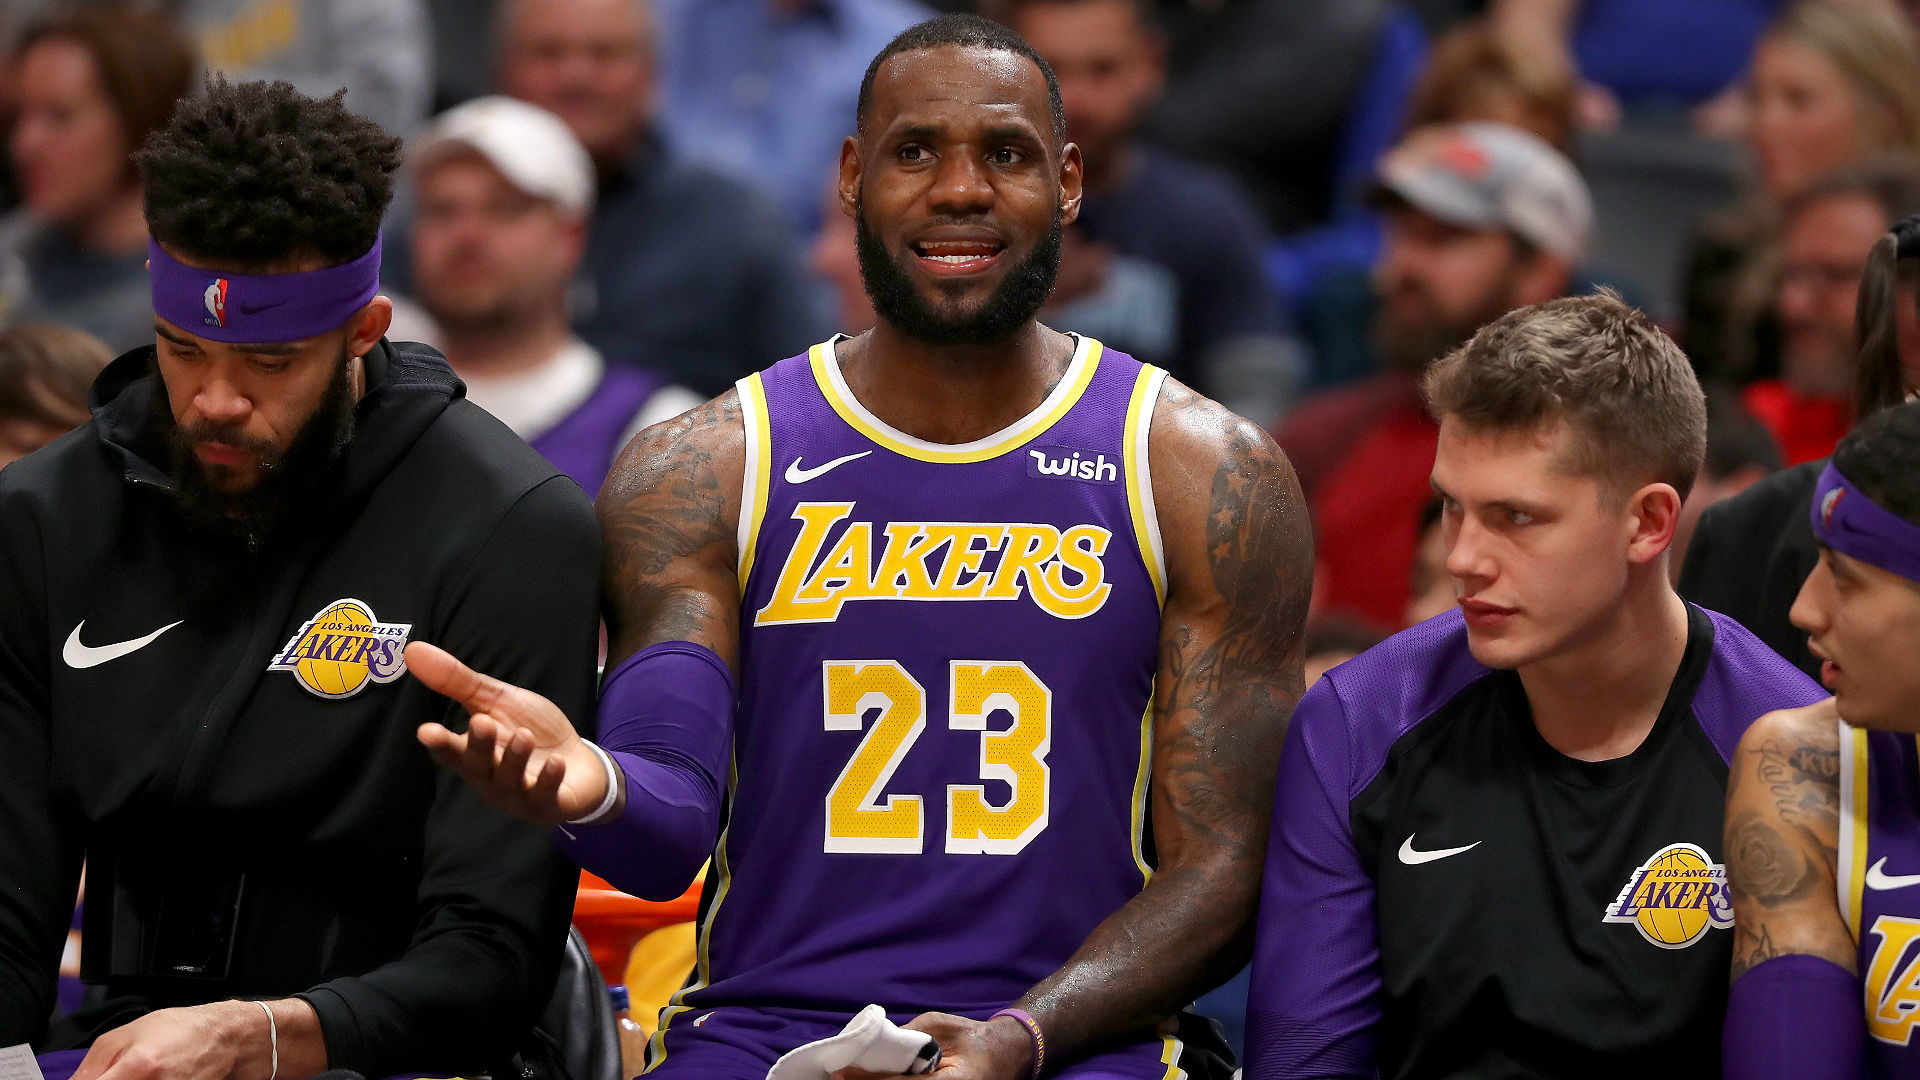 LeBron James was alone on the Lakers' bench and NBA fans had plenty of jokes